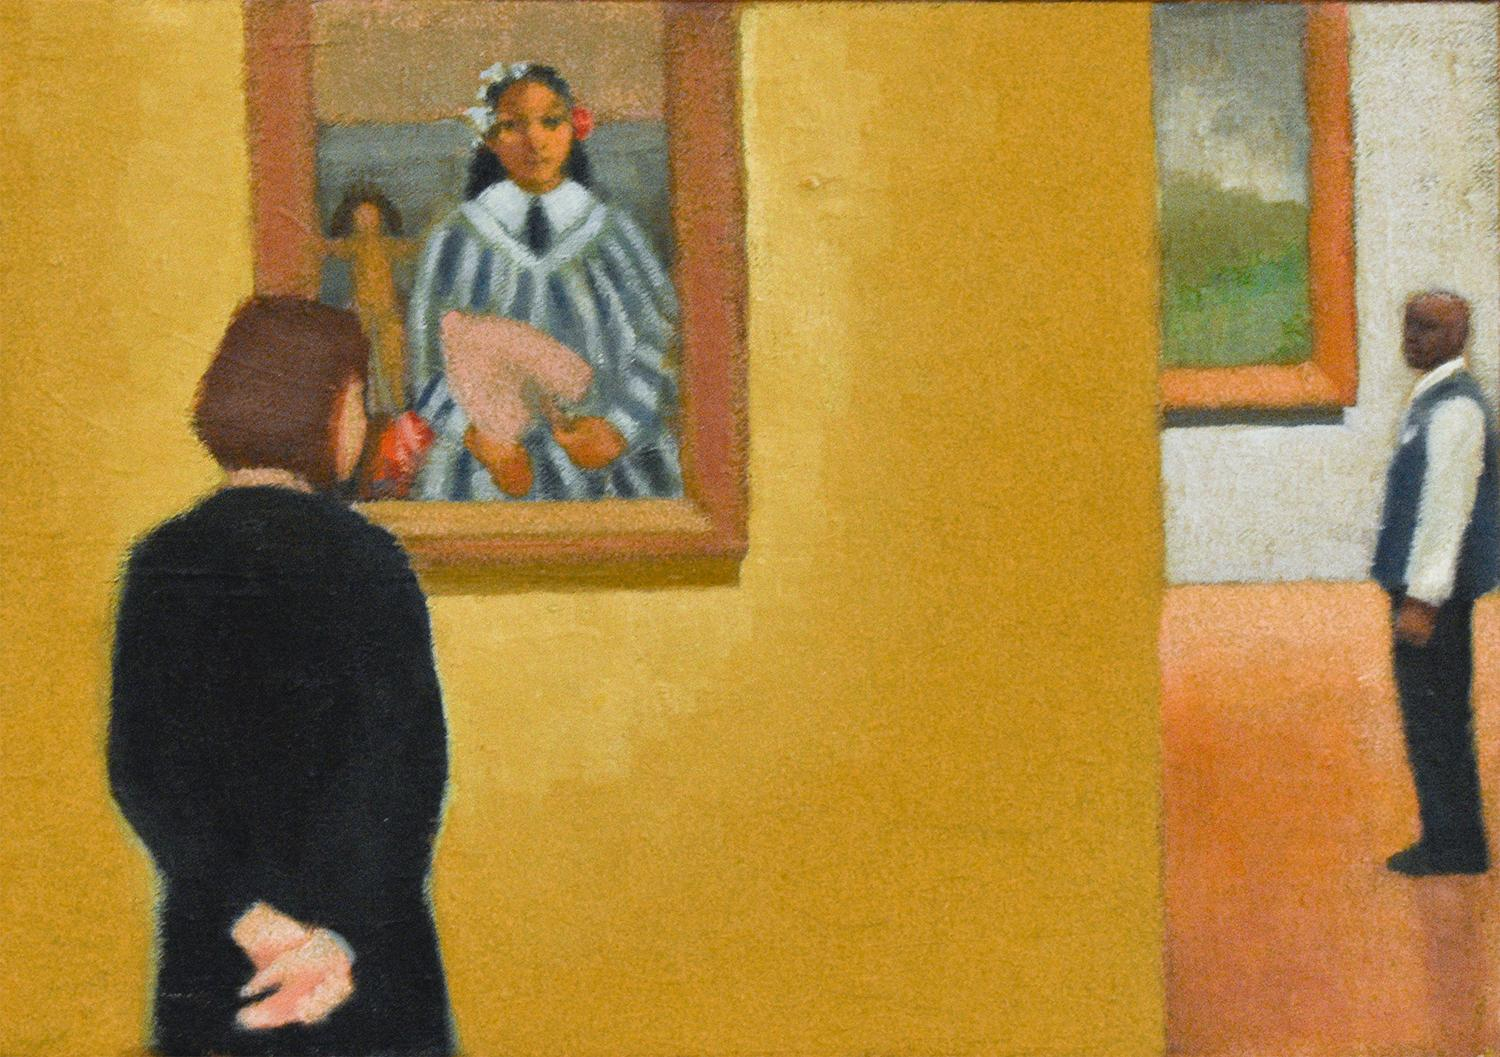 Gauguin's Girl (Figurative Painting of Women at the Chicago Art Institute)